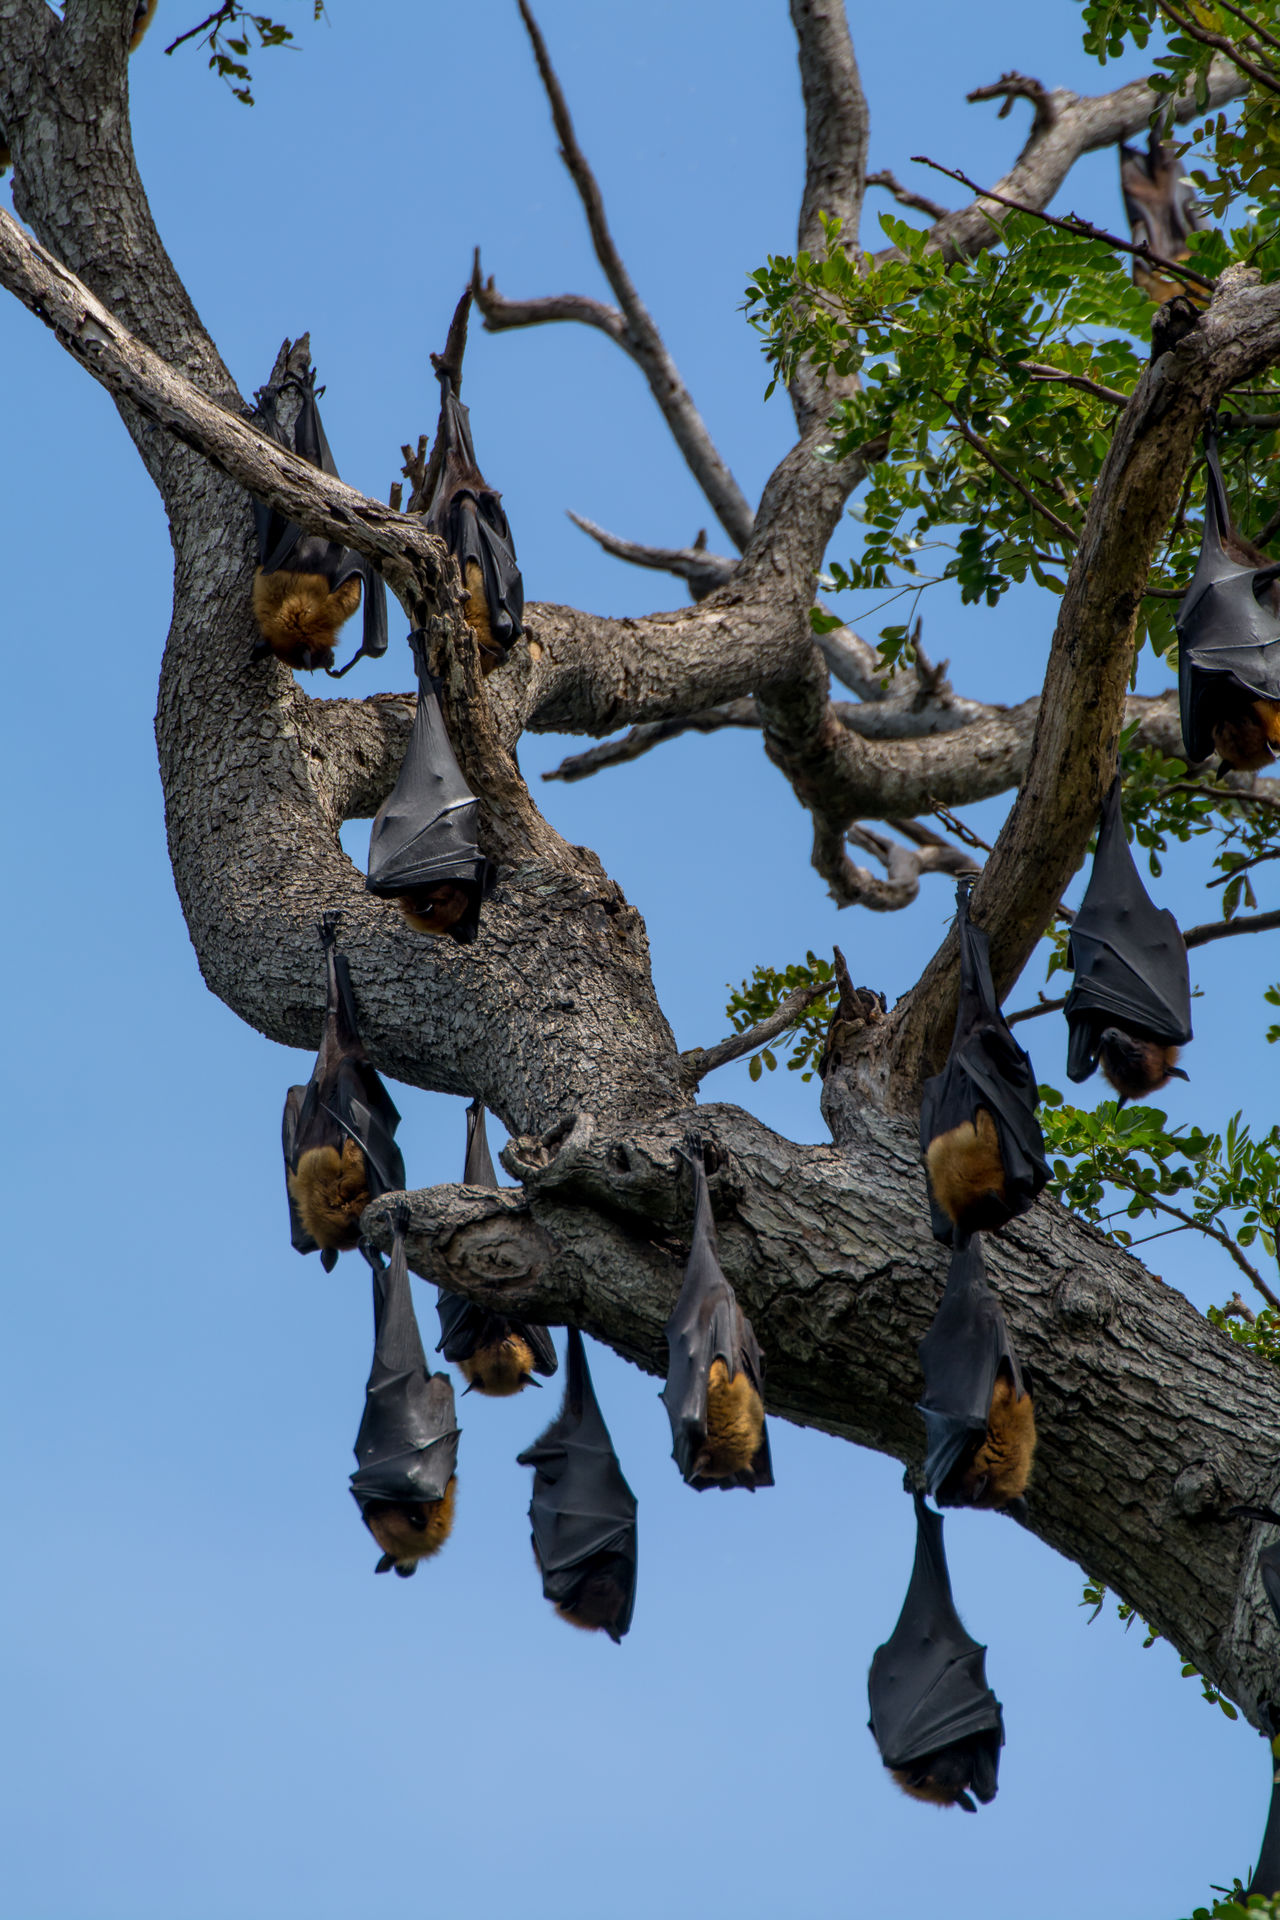 Animal Themes Animal Wildlife Animals In The Wild Bat - Animal Beauty In Nature Branch Clear Sky Day Flying Fox Hanging Hunging A Tree Low Angle View Mammal Nature No People Outdoors Sky Sleeping Sri Lanka Tree